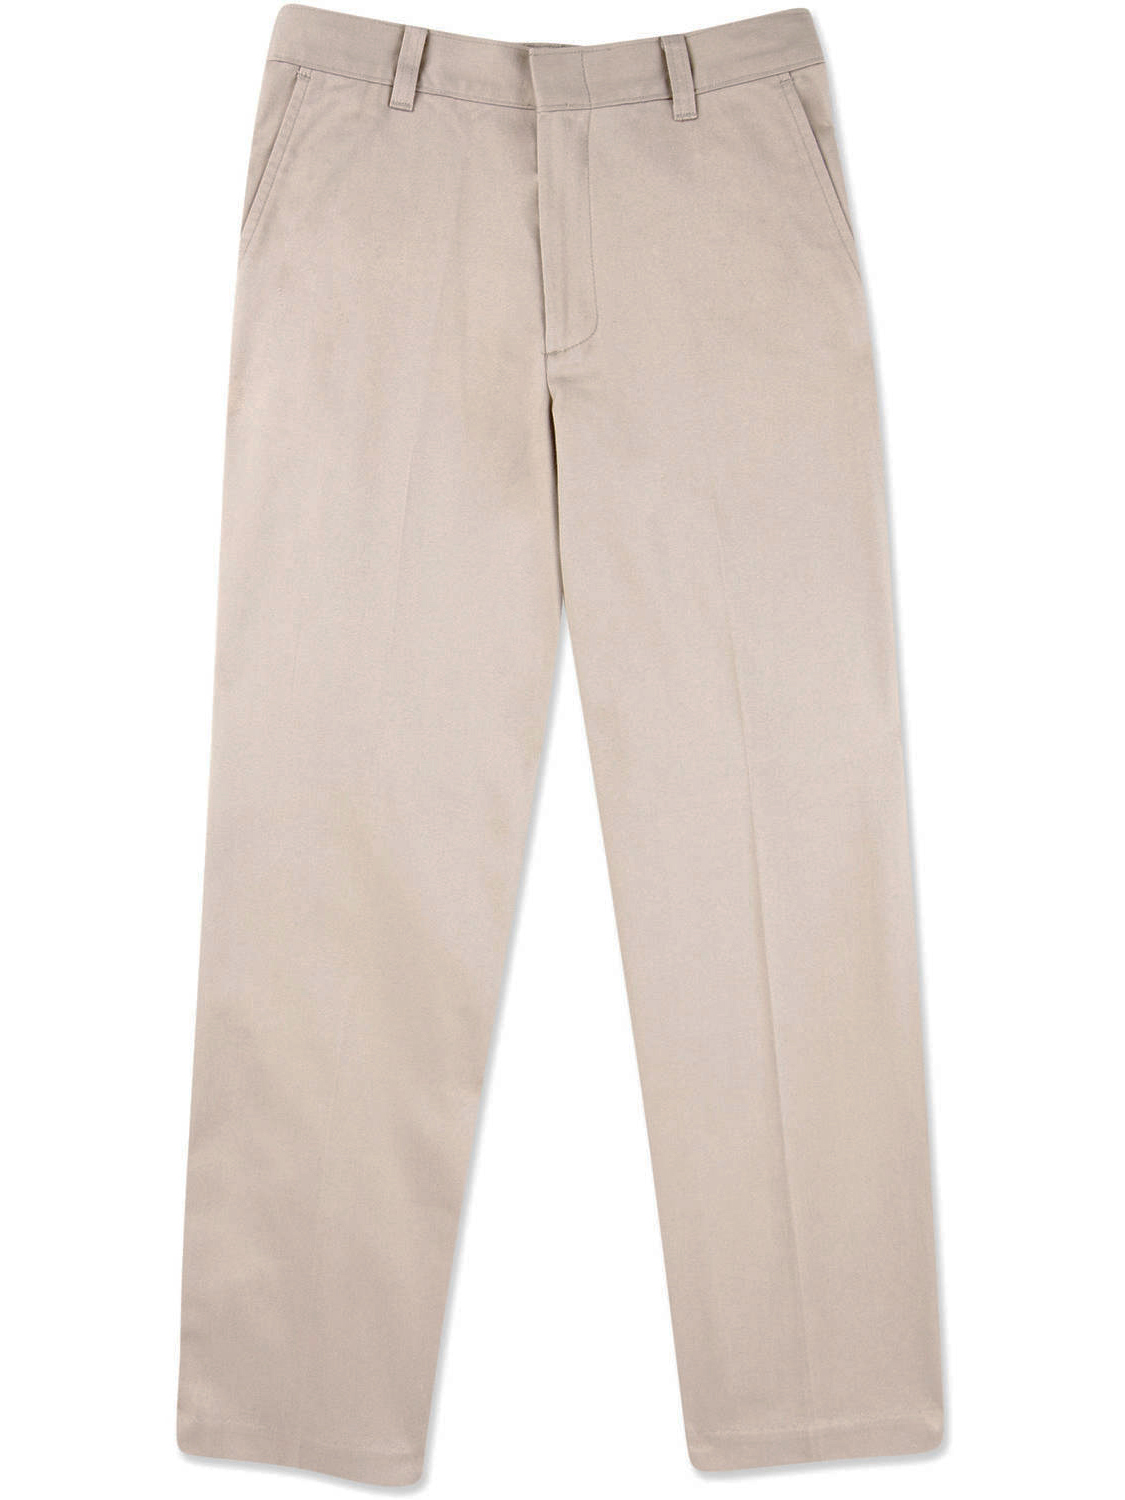 Boys School Uniforms Flat Front Pants